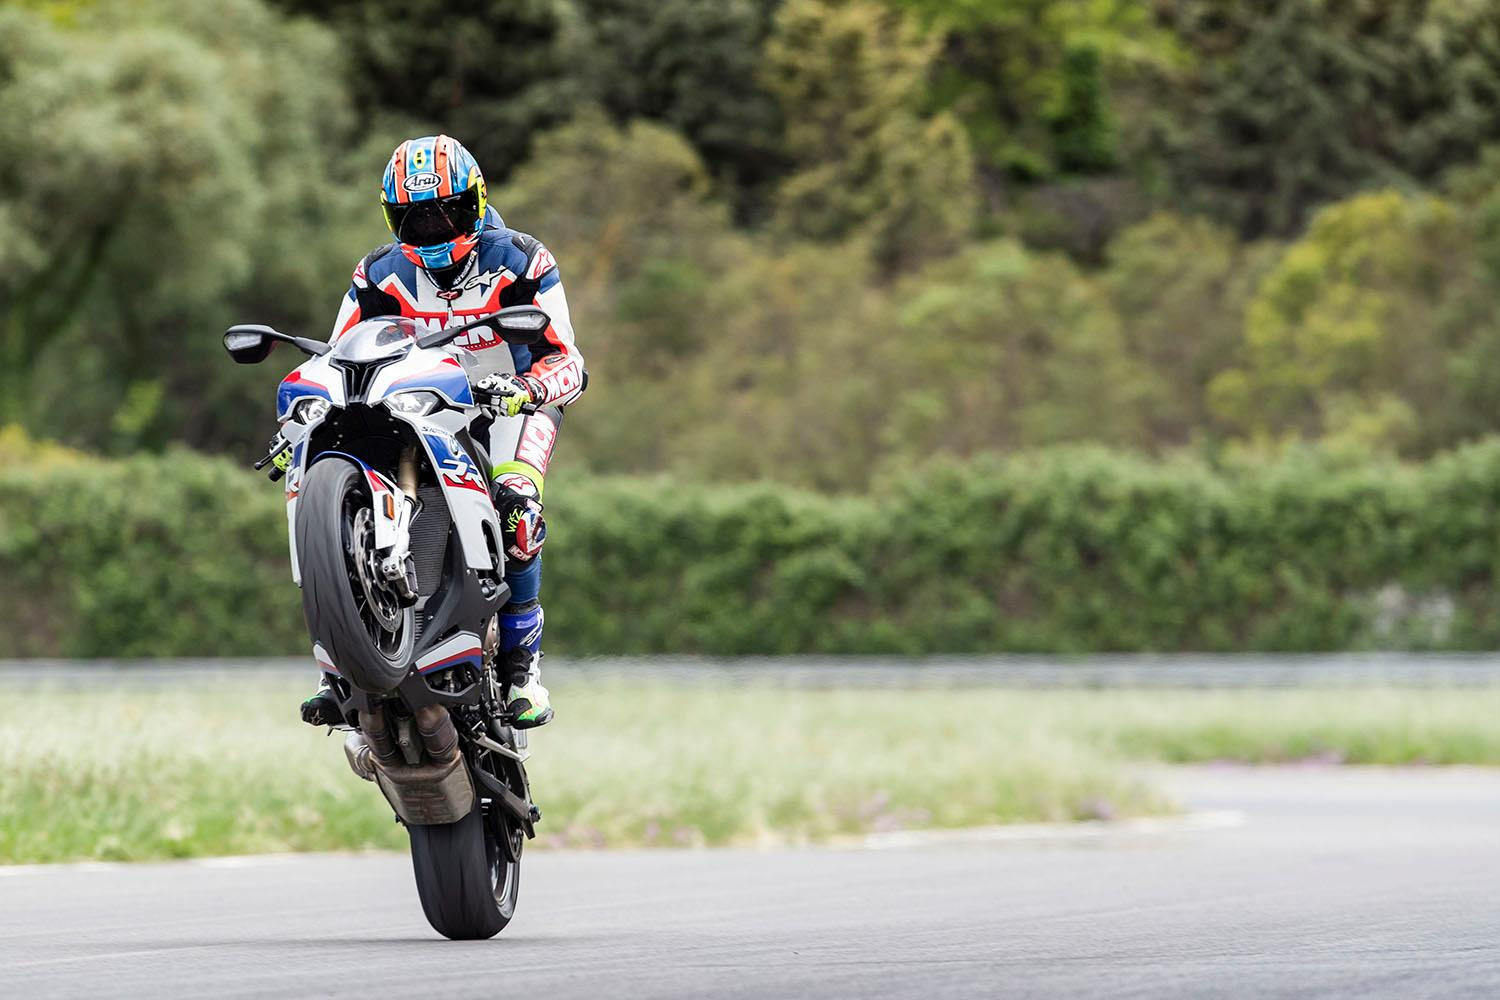 BMW S1000RR wheelie